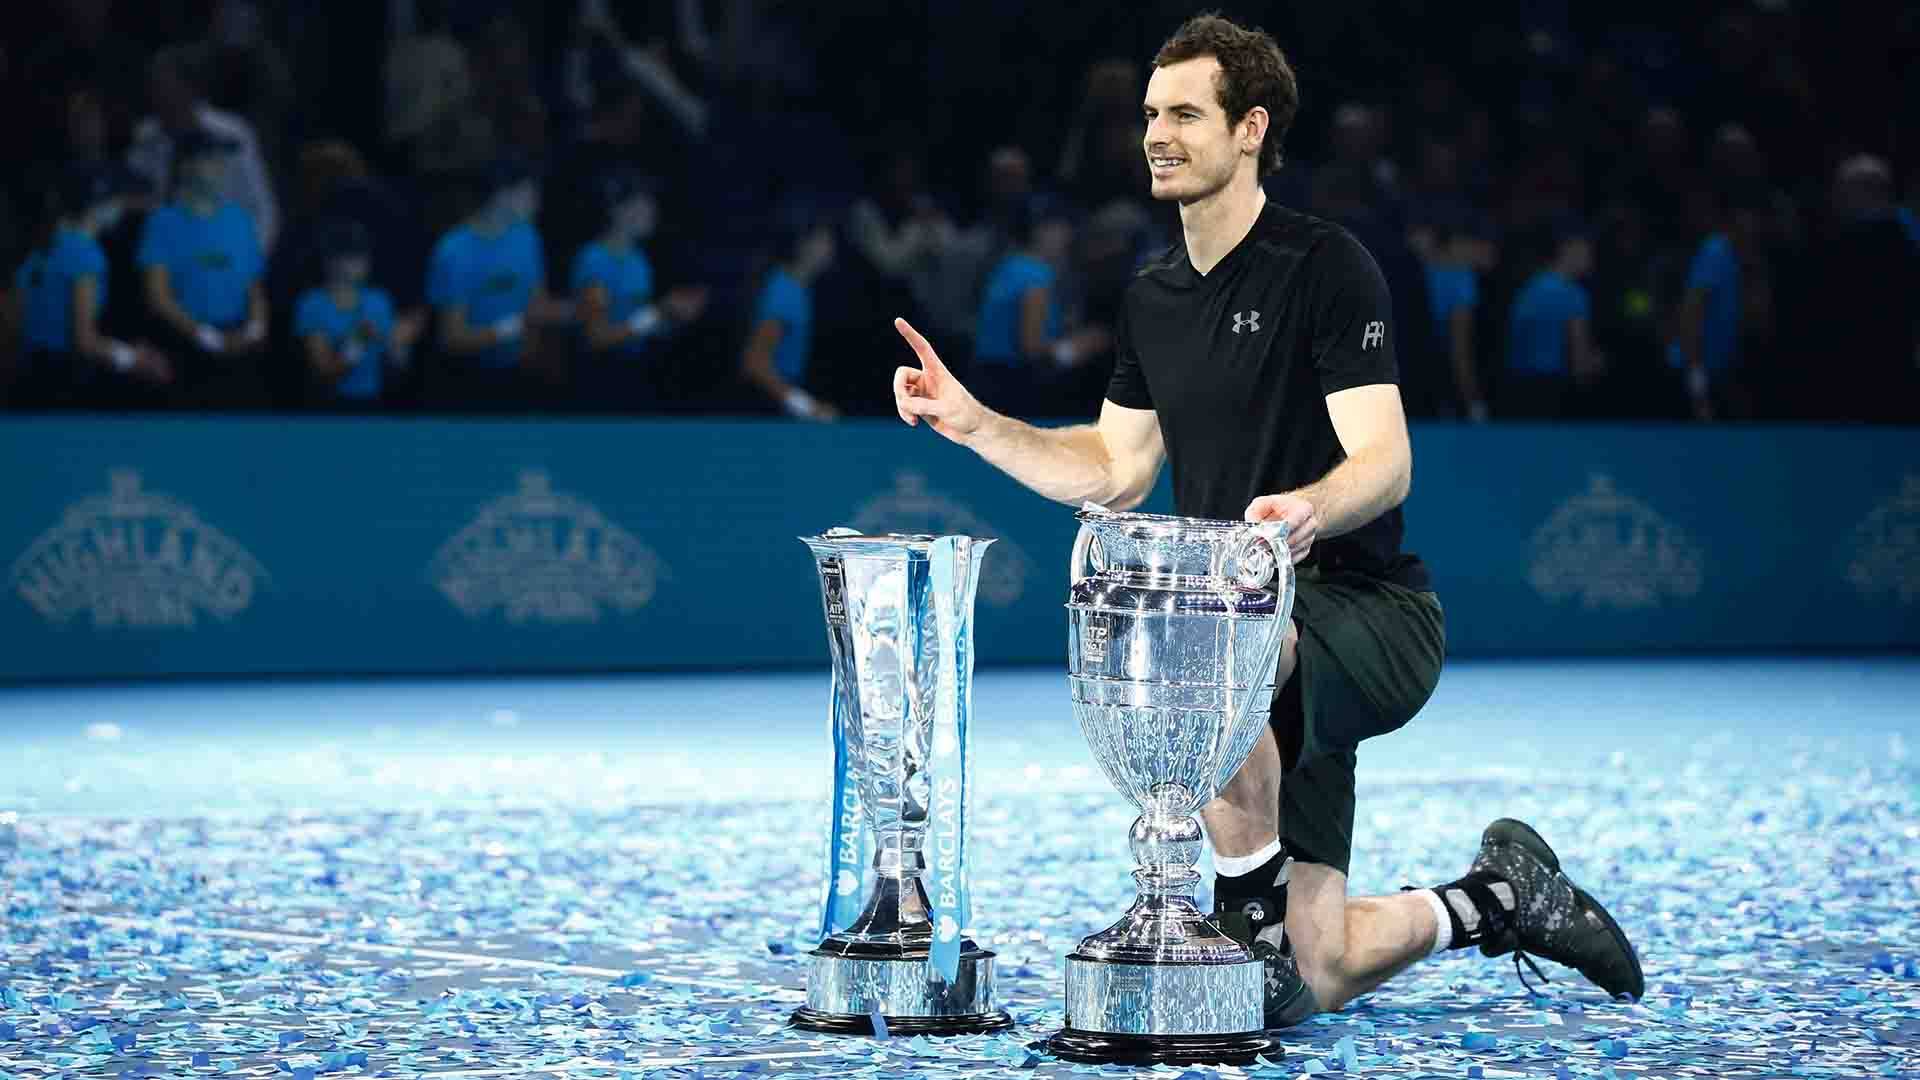 <a href='/en/players/andy-murray/mc10/overview'>Andy Murray</a> beat <a href='/en/players/novak-djokovic/d643/overview'>Novak Djokovic</a> to win the <a href='/en/tournaments/nitto-atp-finals/605/overview'>Nitto ATP Finals</a> and finish as year-end World No. 1 in the FedEx ATP Rankings in 2016.